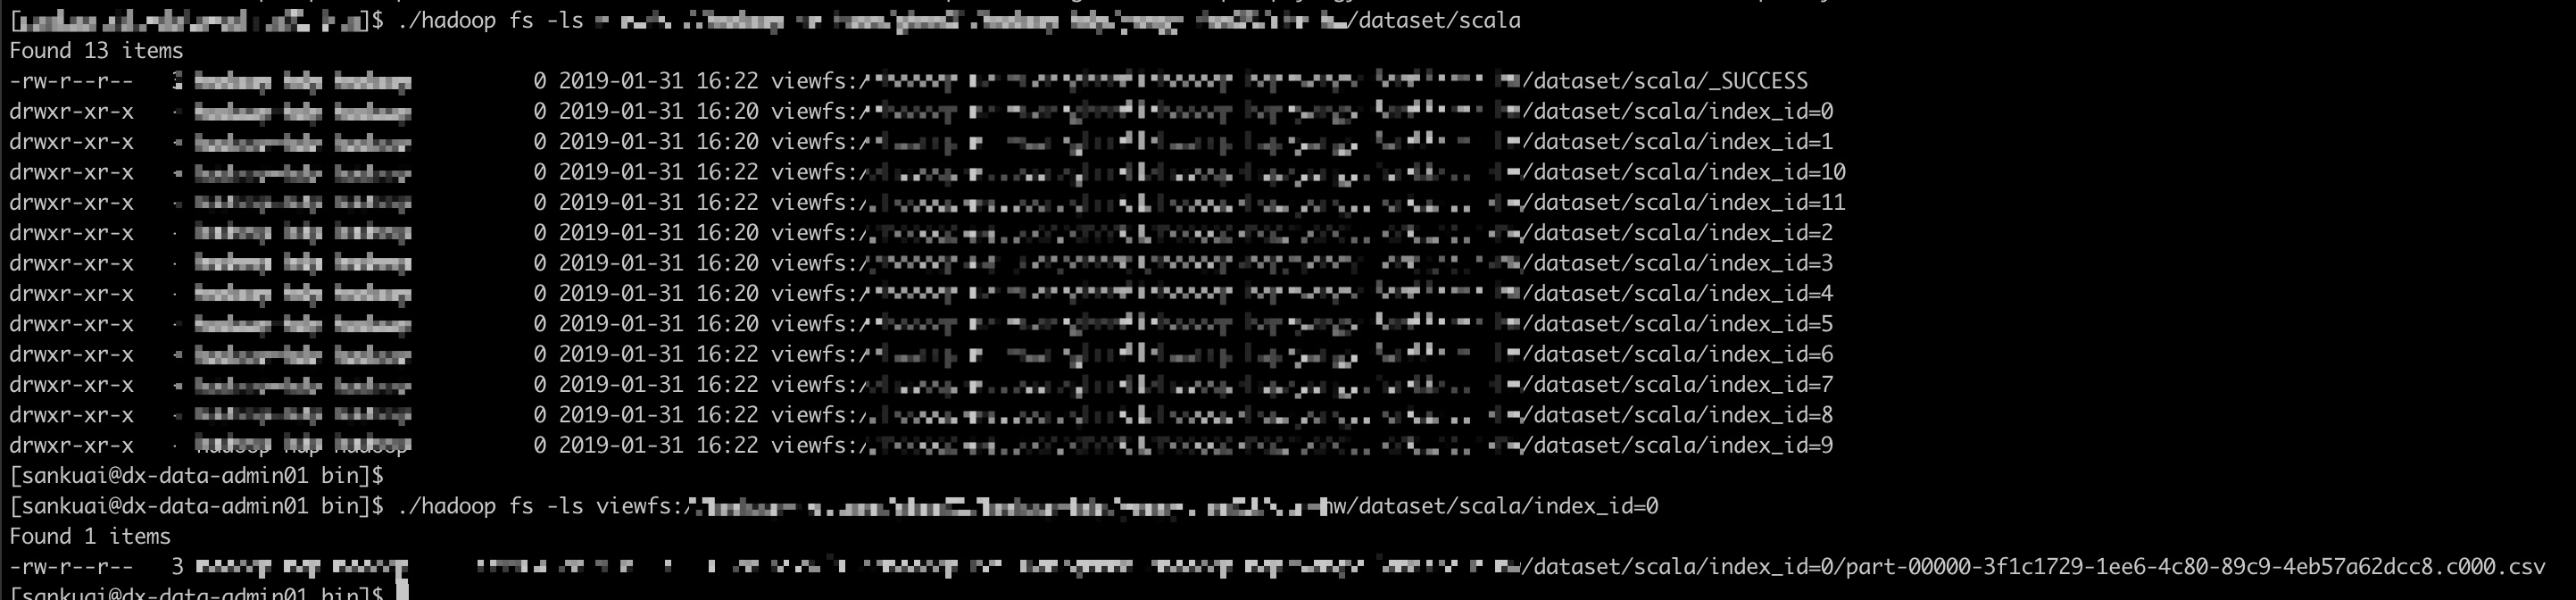 can not use with Dataframe write partitionBy, always output